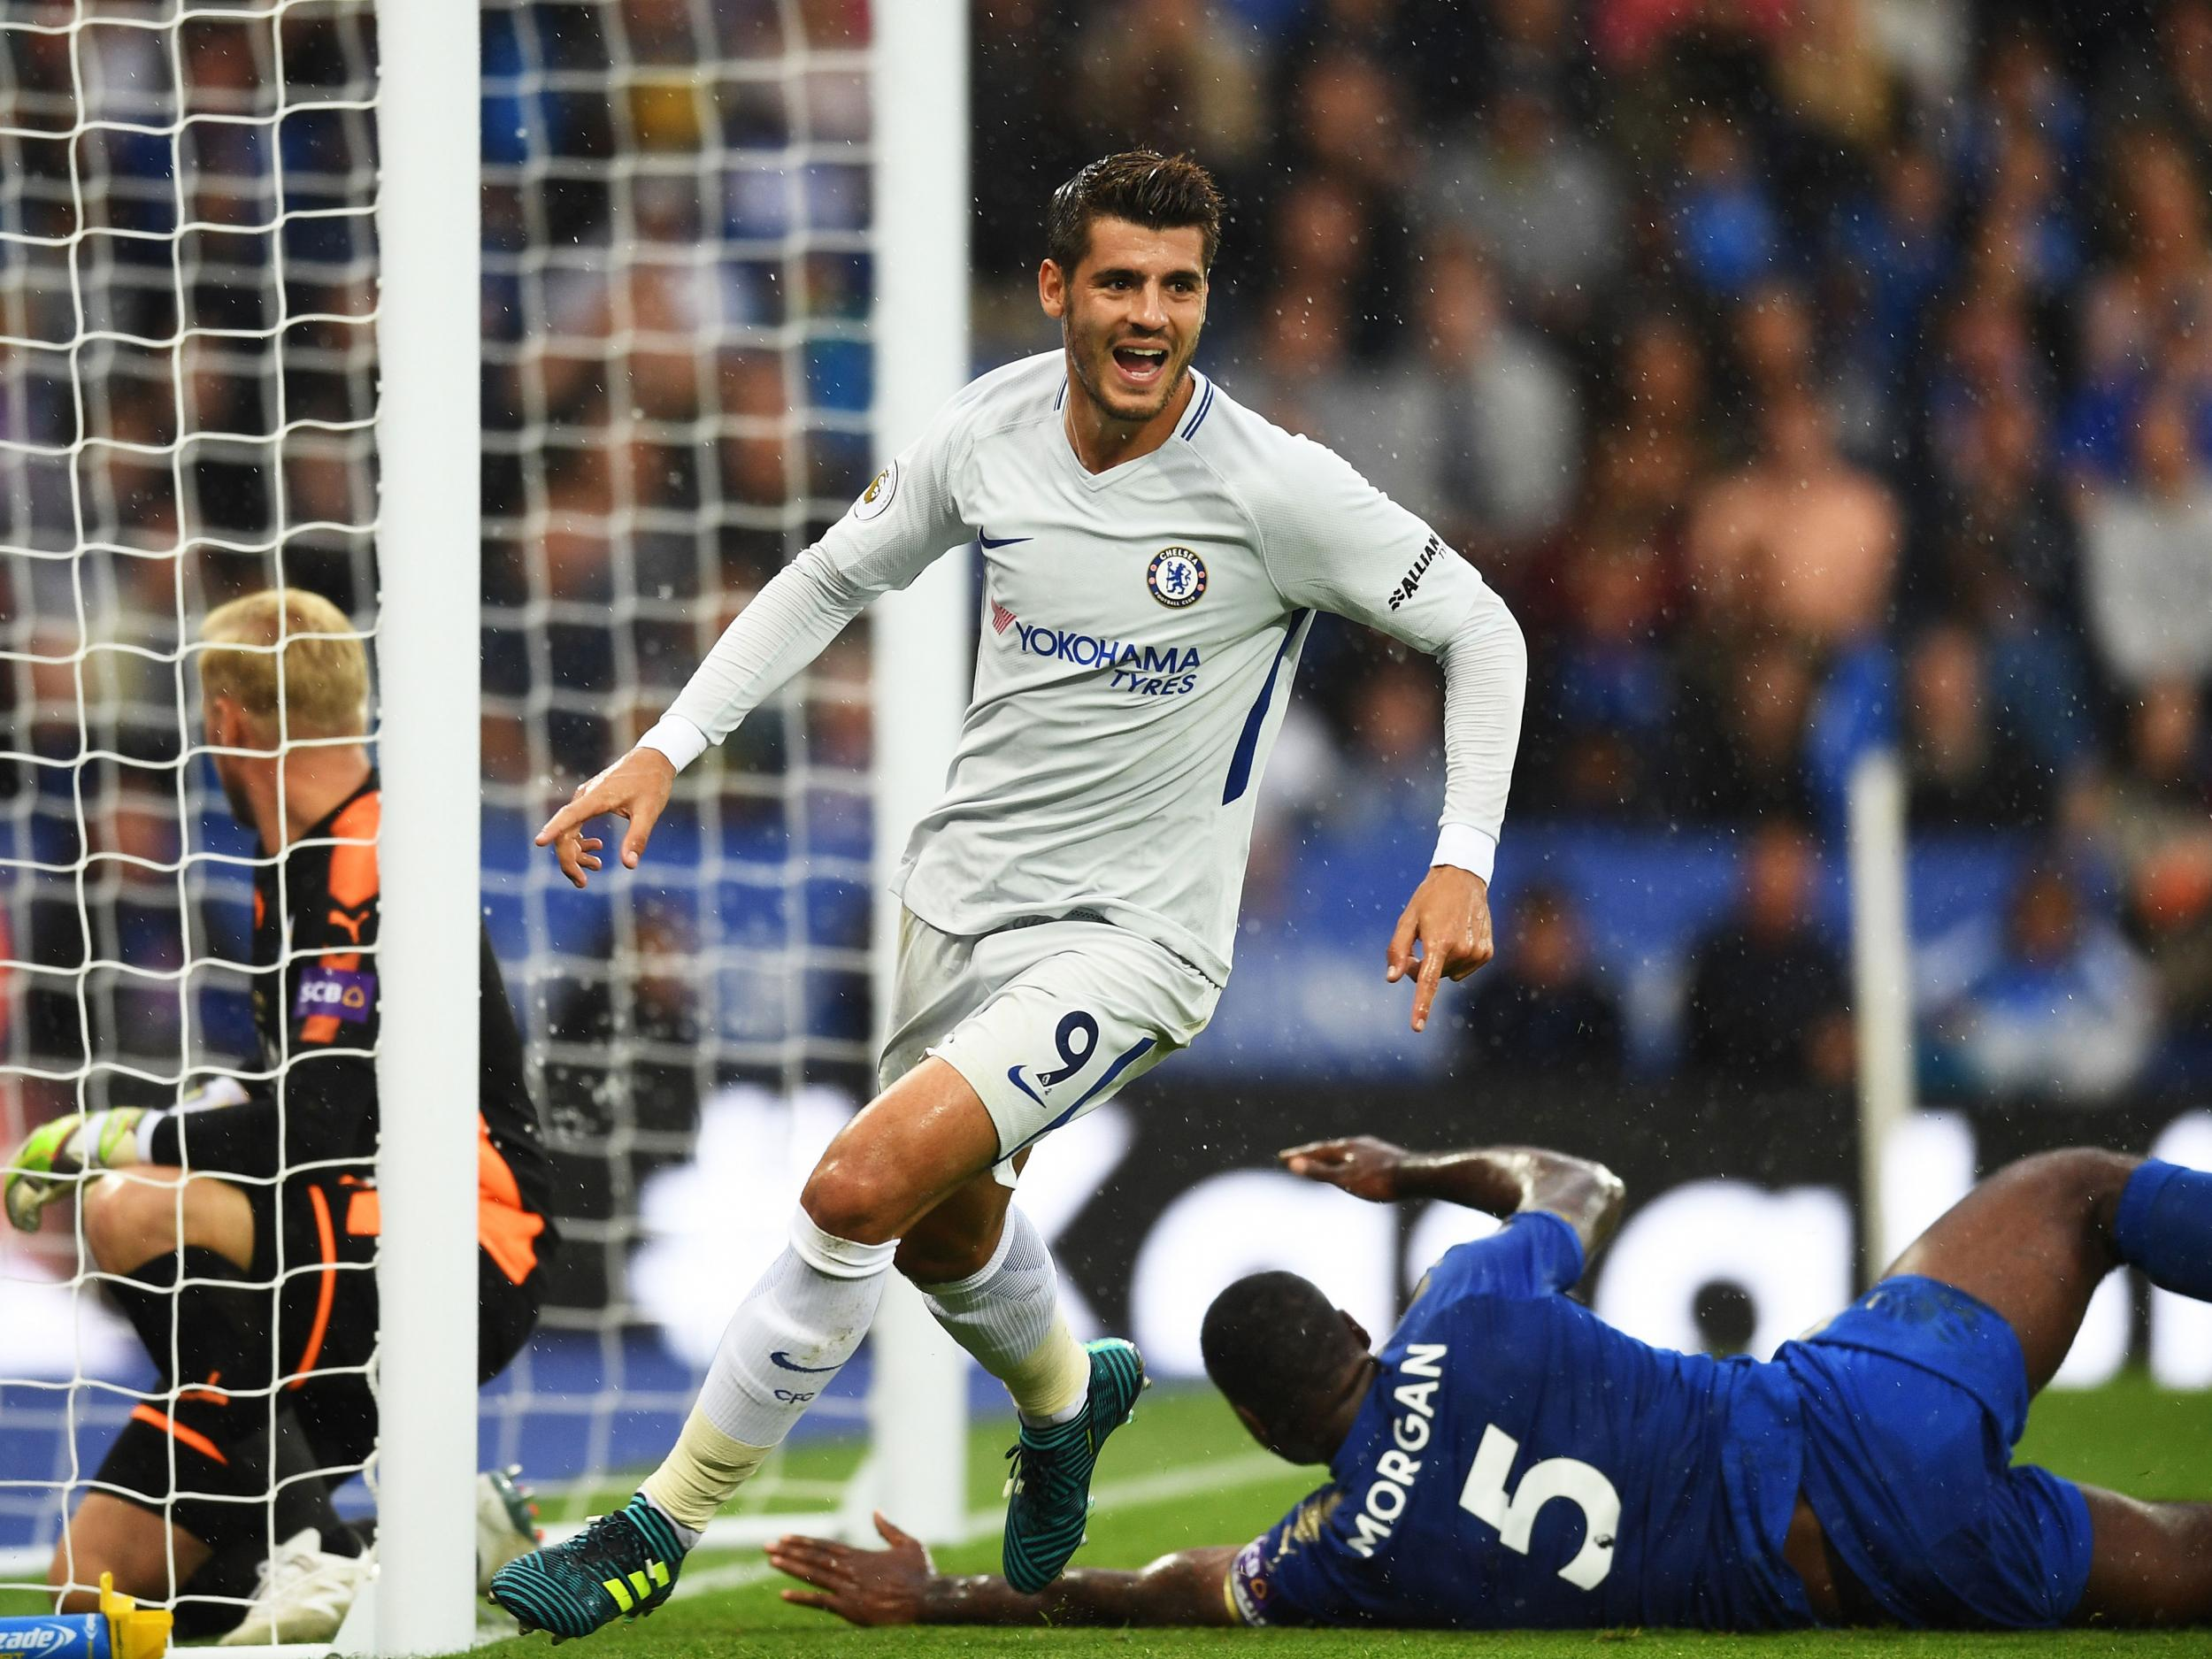 Chelsea call on supporters to stop singing anti Semitic Alvaro